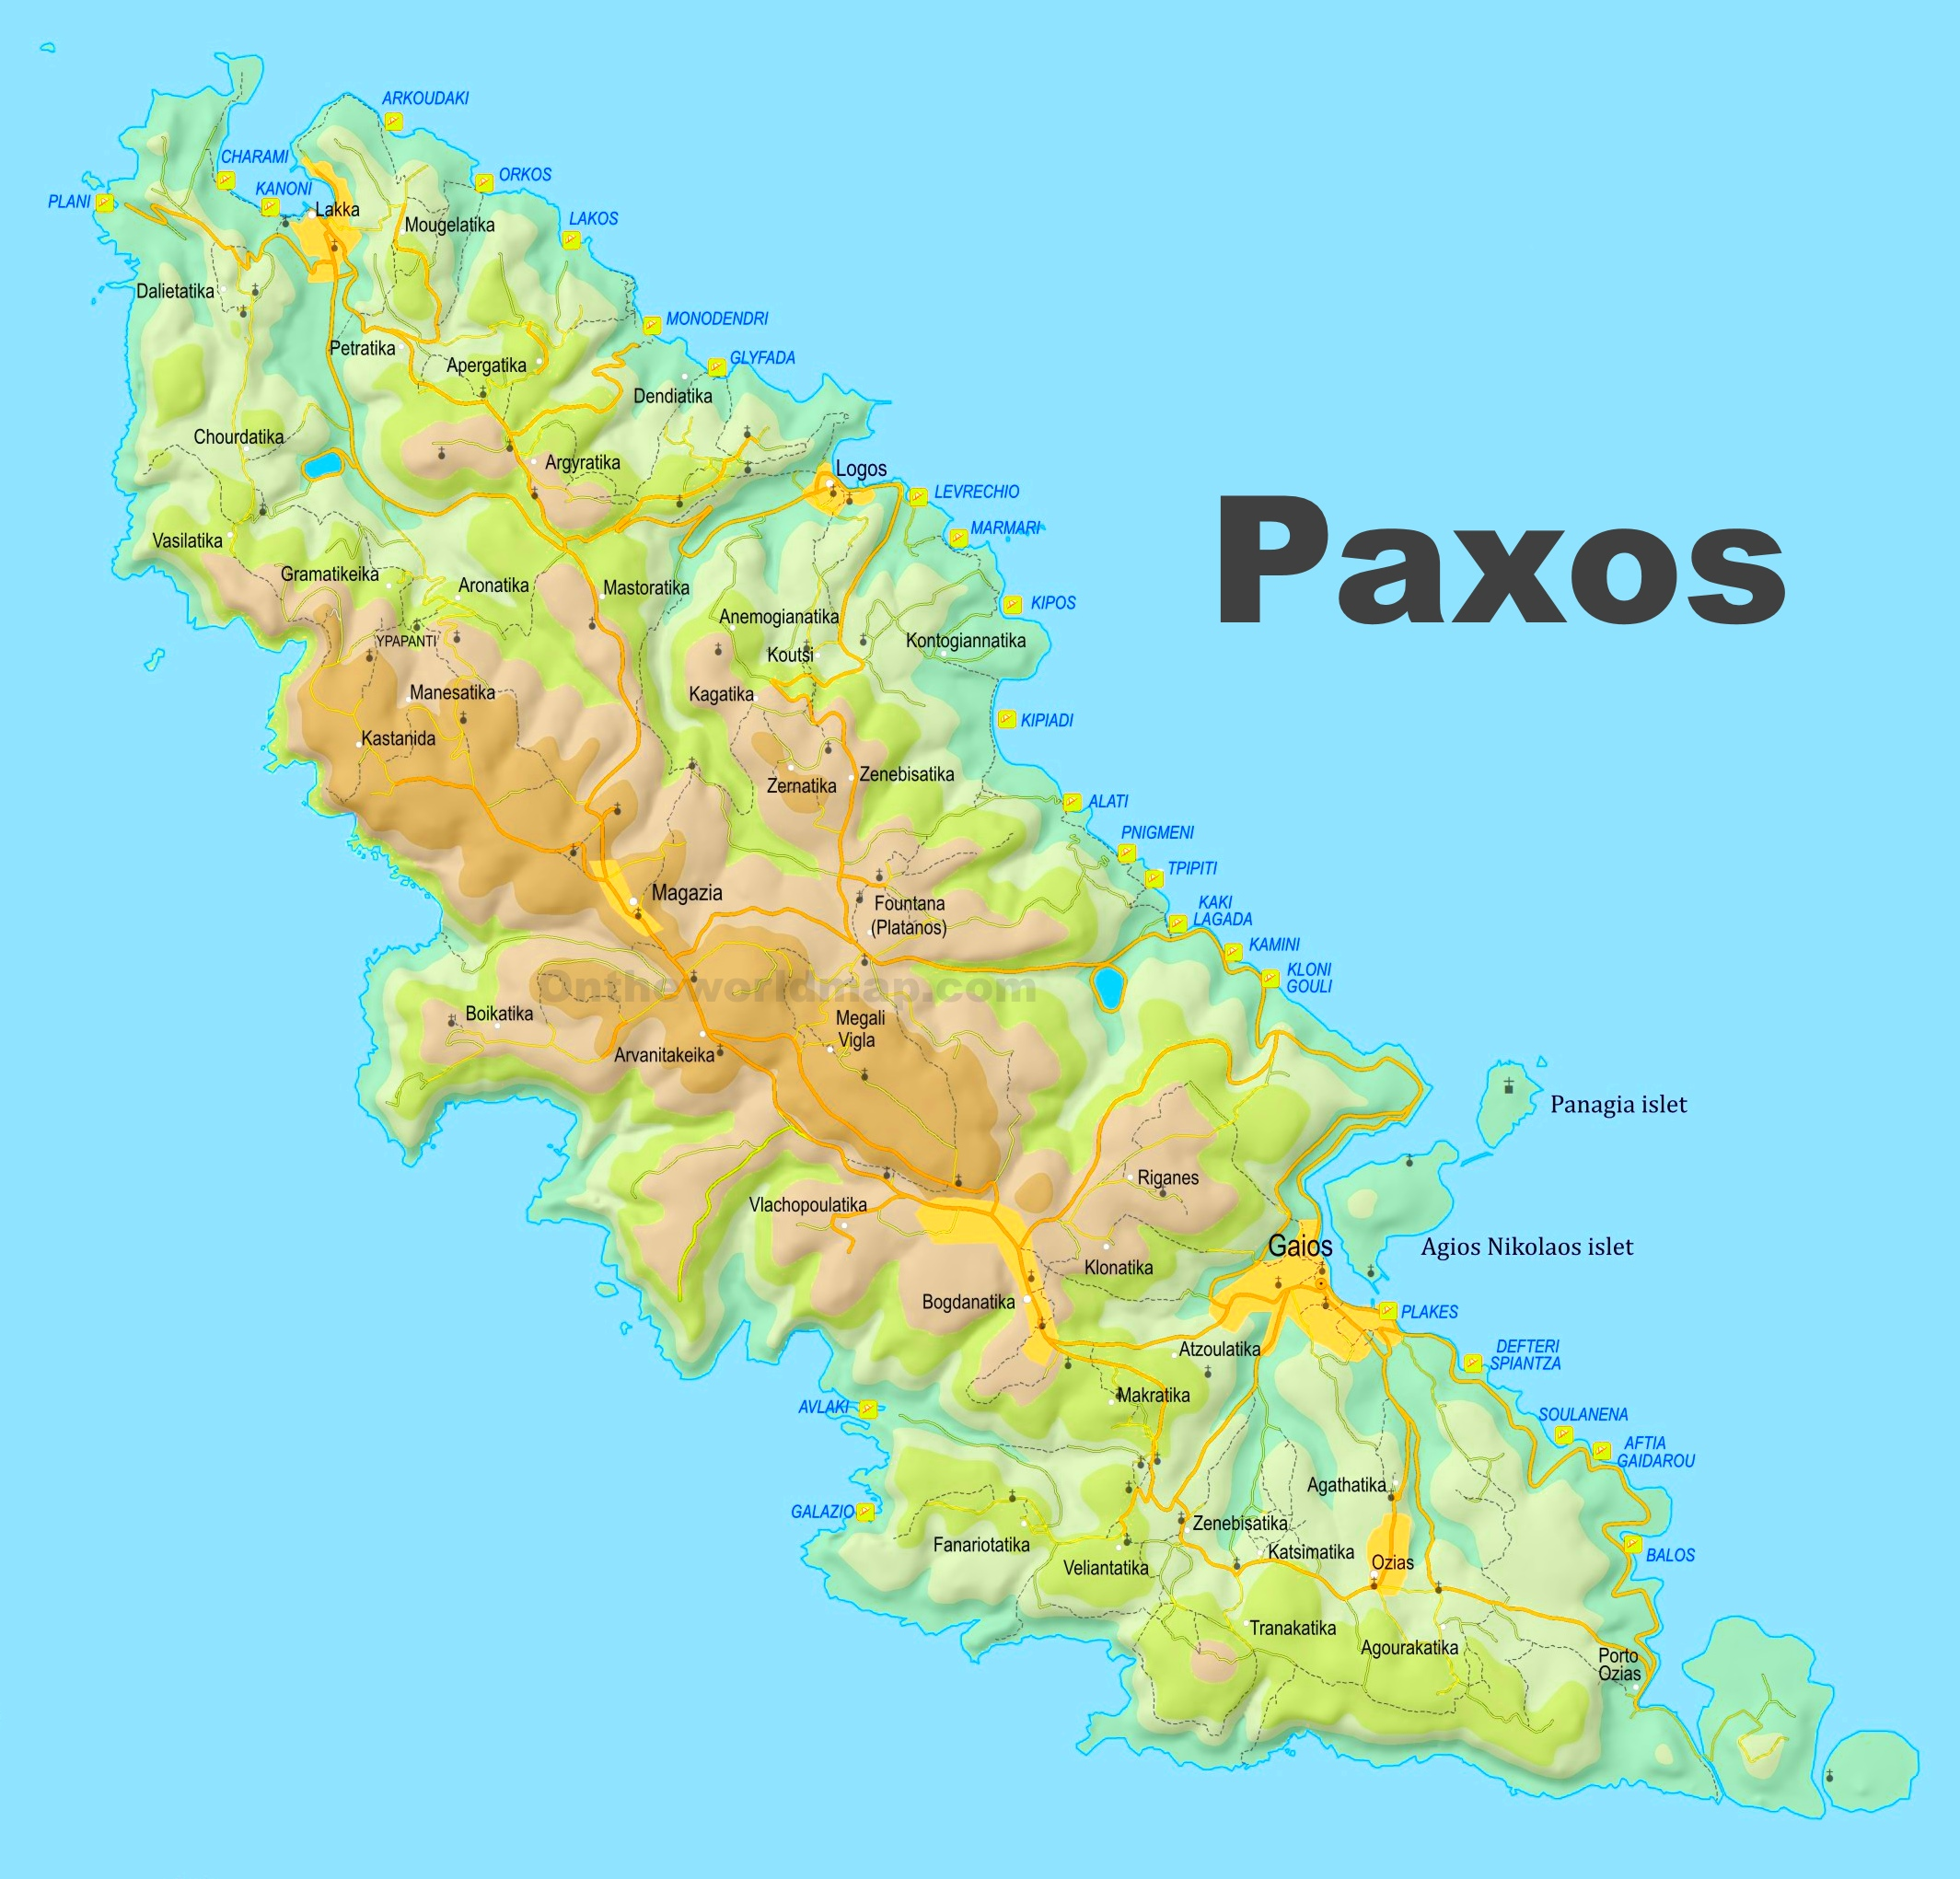 tourist map of paris france with Paxos Tourist Map on Sintra Cascais furthermore Skeleton Coast further 8058233133 as well Paxos Tourist Map furthermore North Adelaide Map.